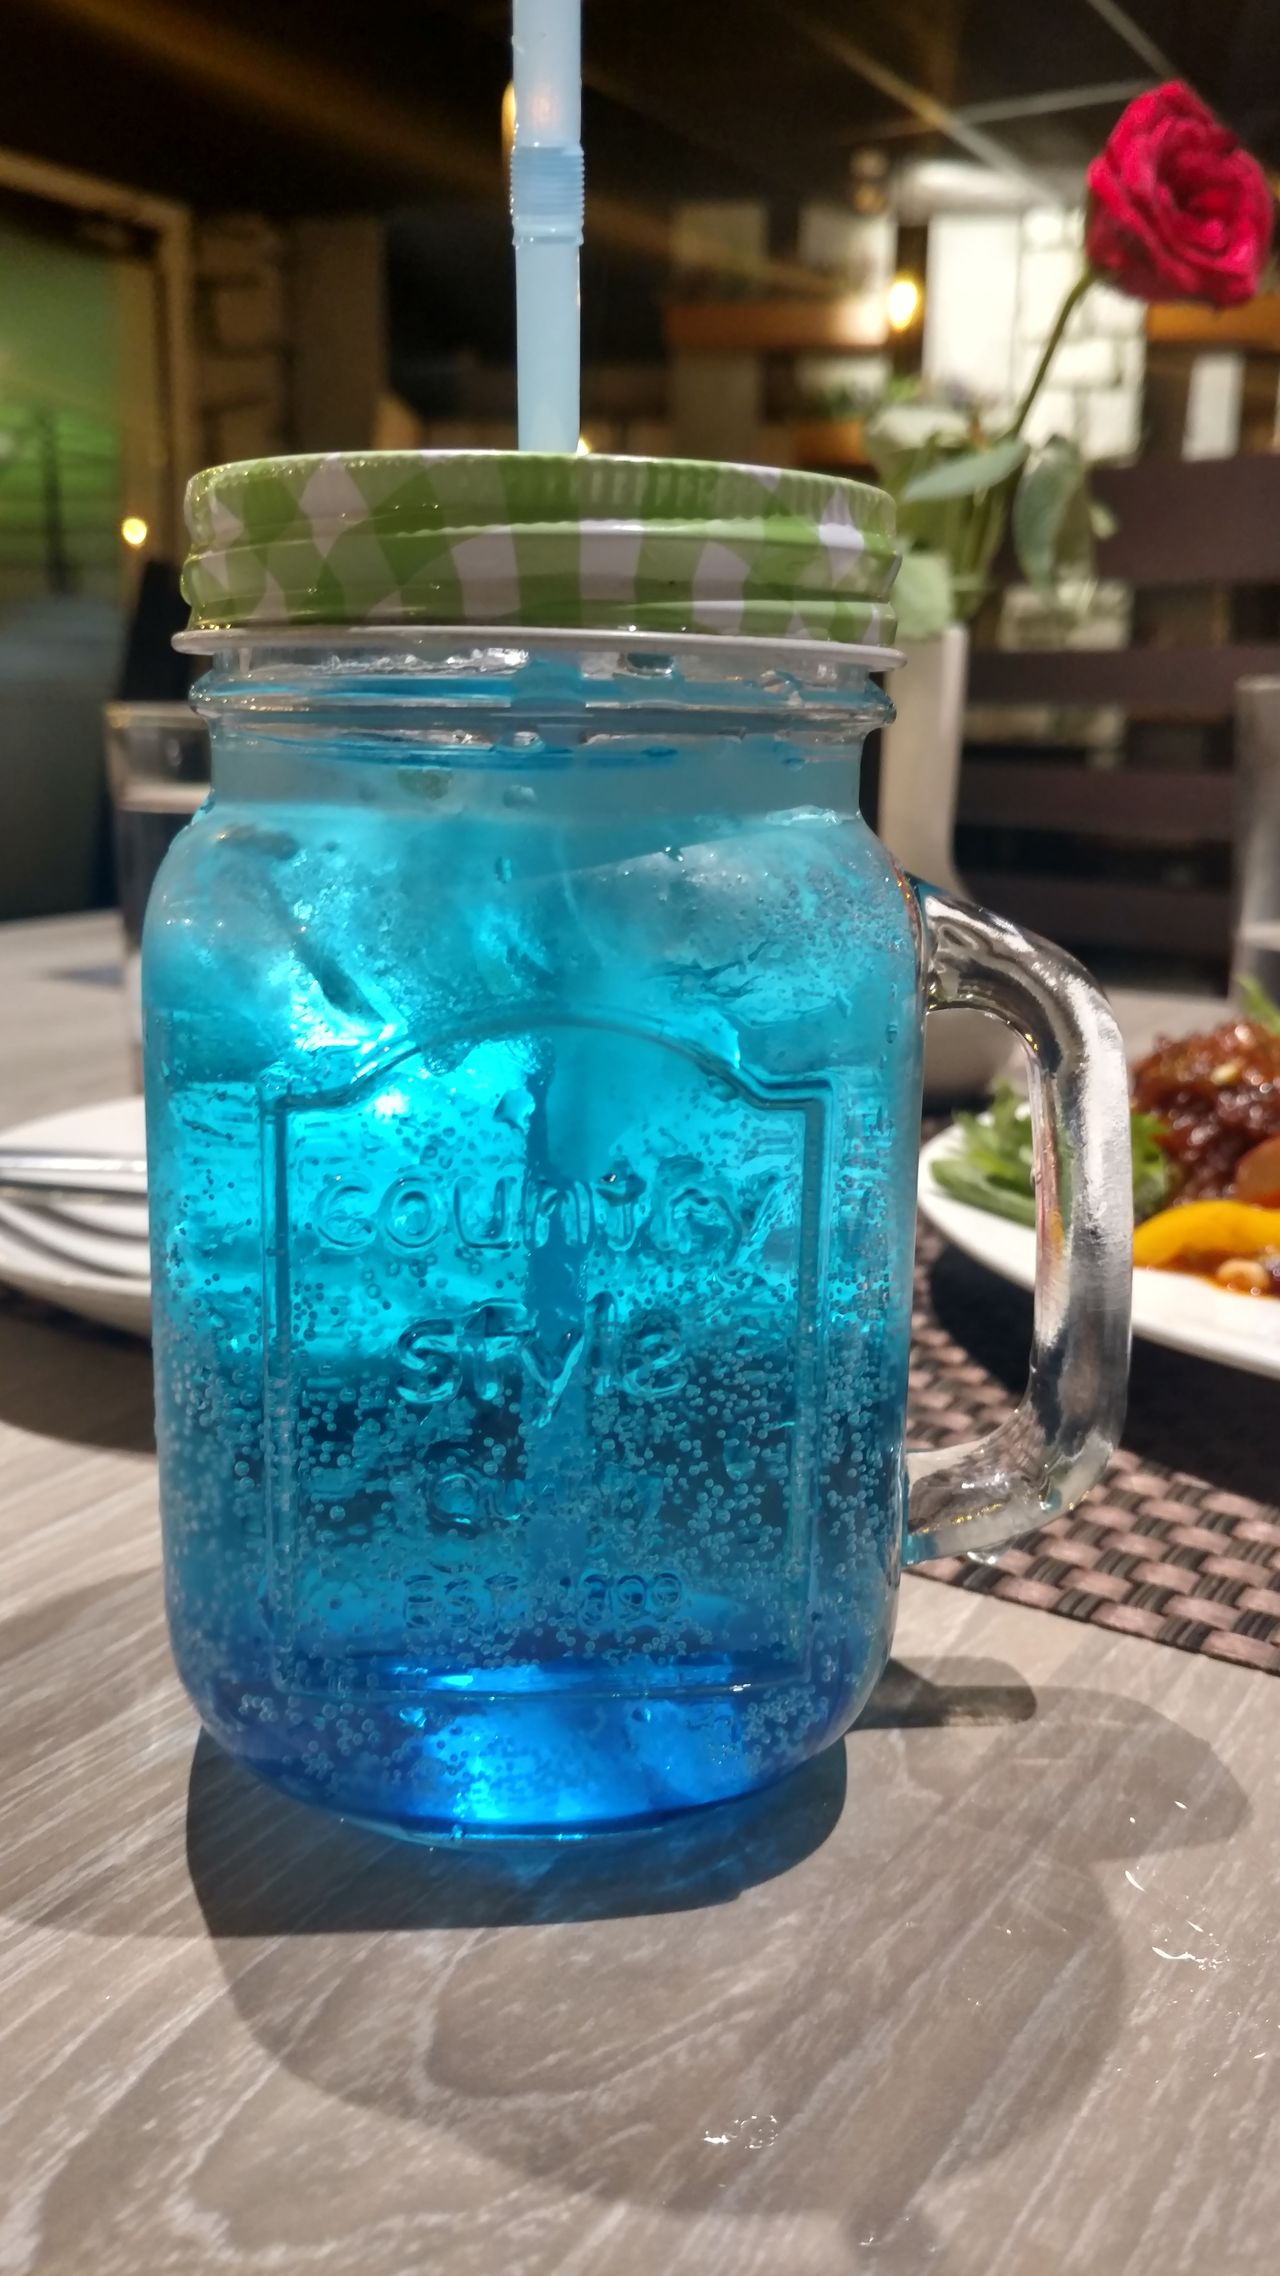 Cool Drink Refreshment Jar Table Food And Drink Blue Freshness Indoors  Day Natural Pure NoEdits  Blue Water BLUE LIME Lime Limejuice Hotel Evening With Friends With Friends <3